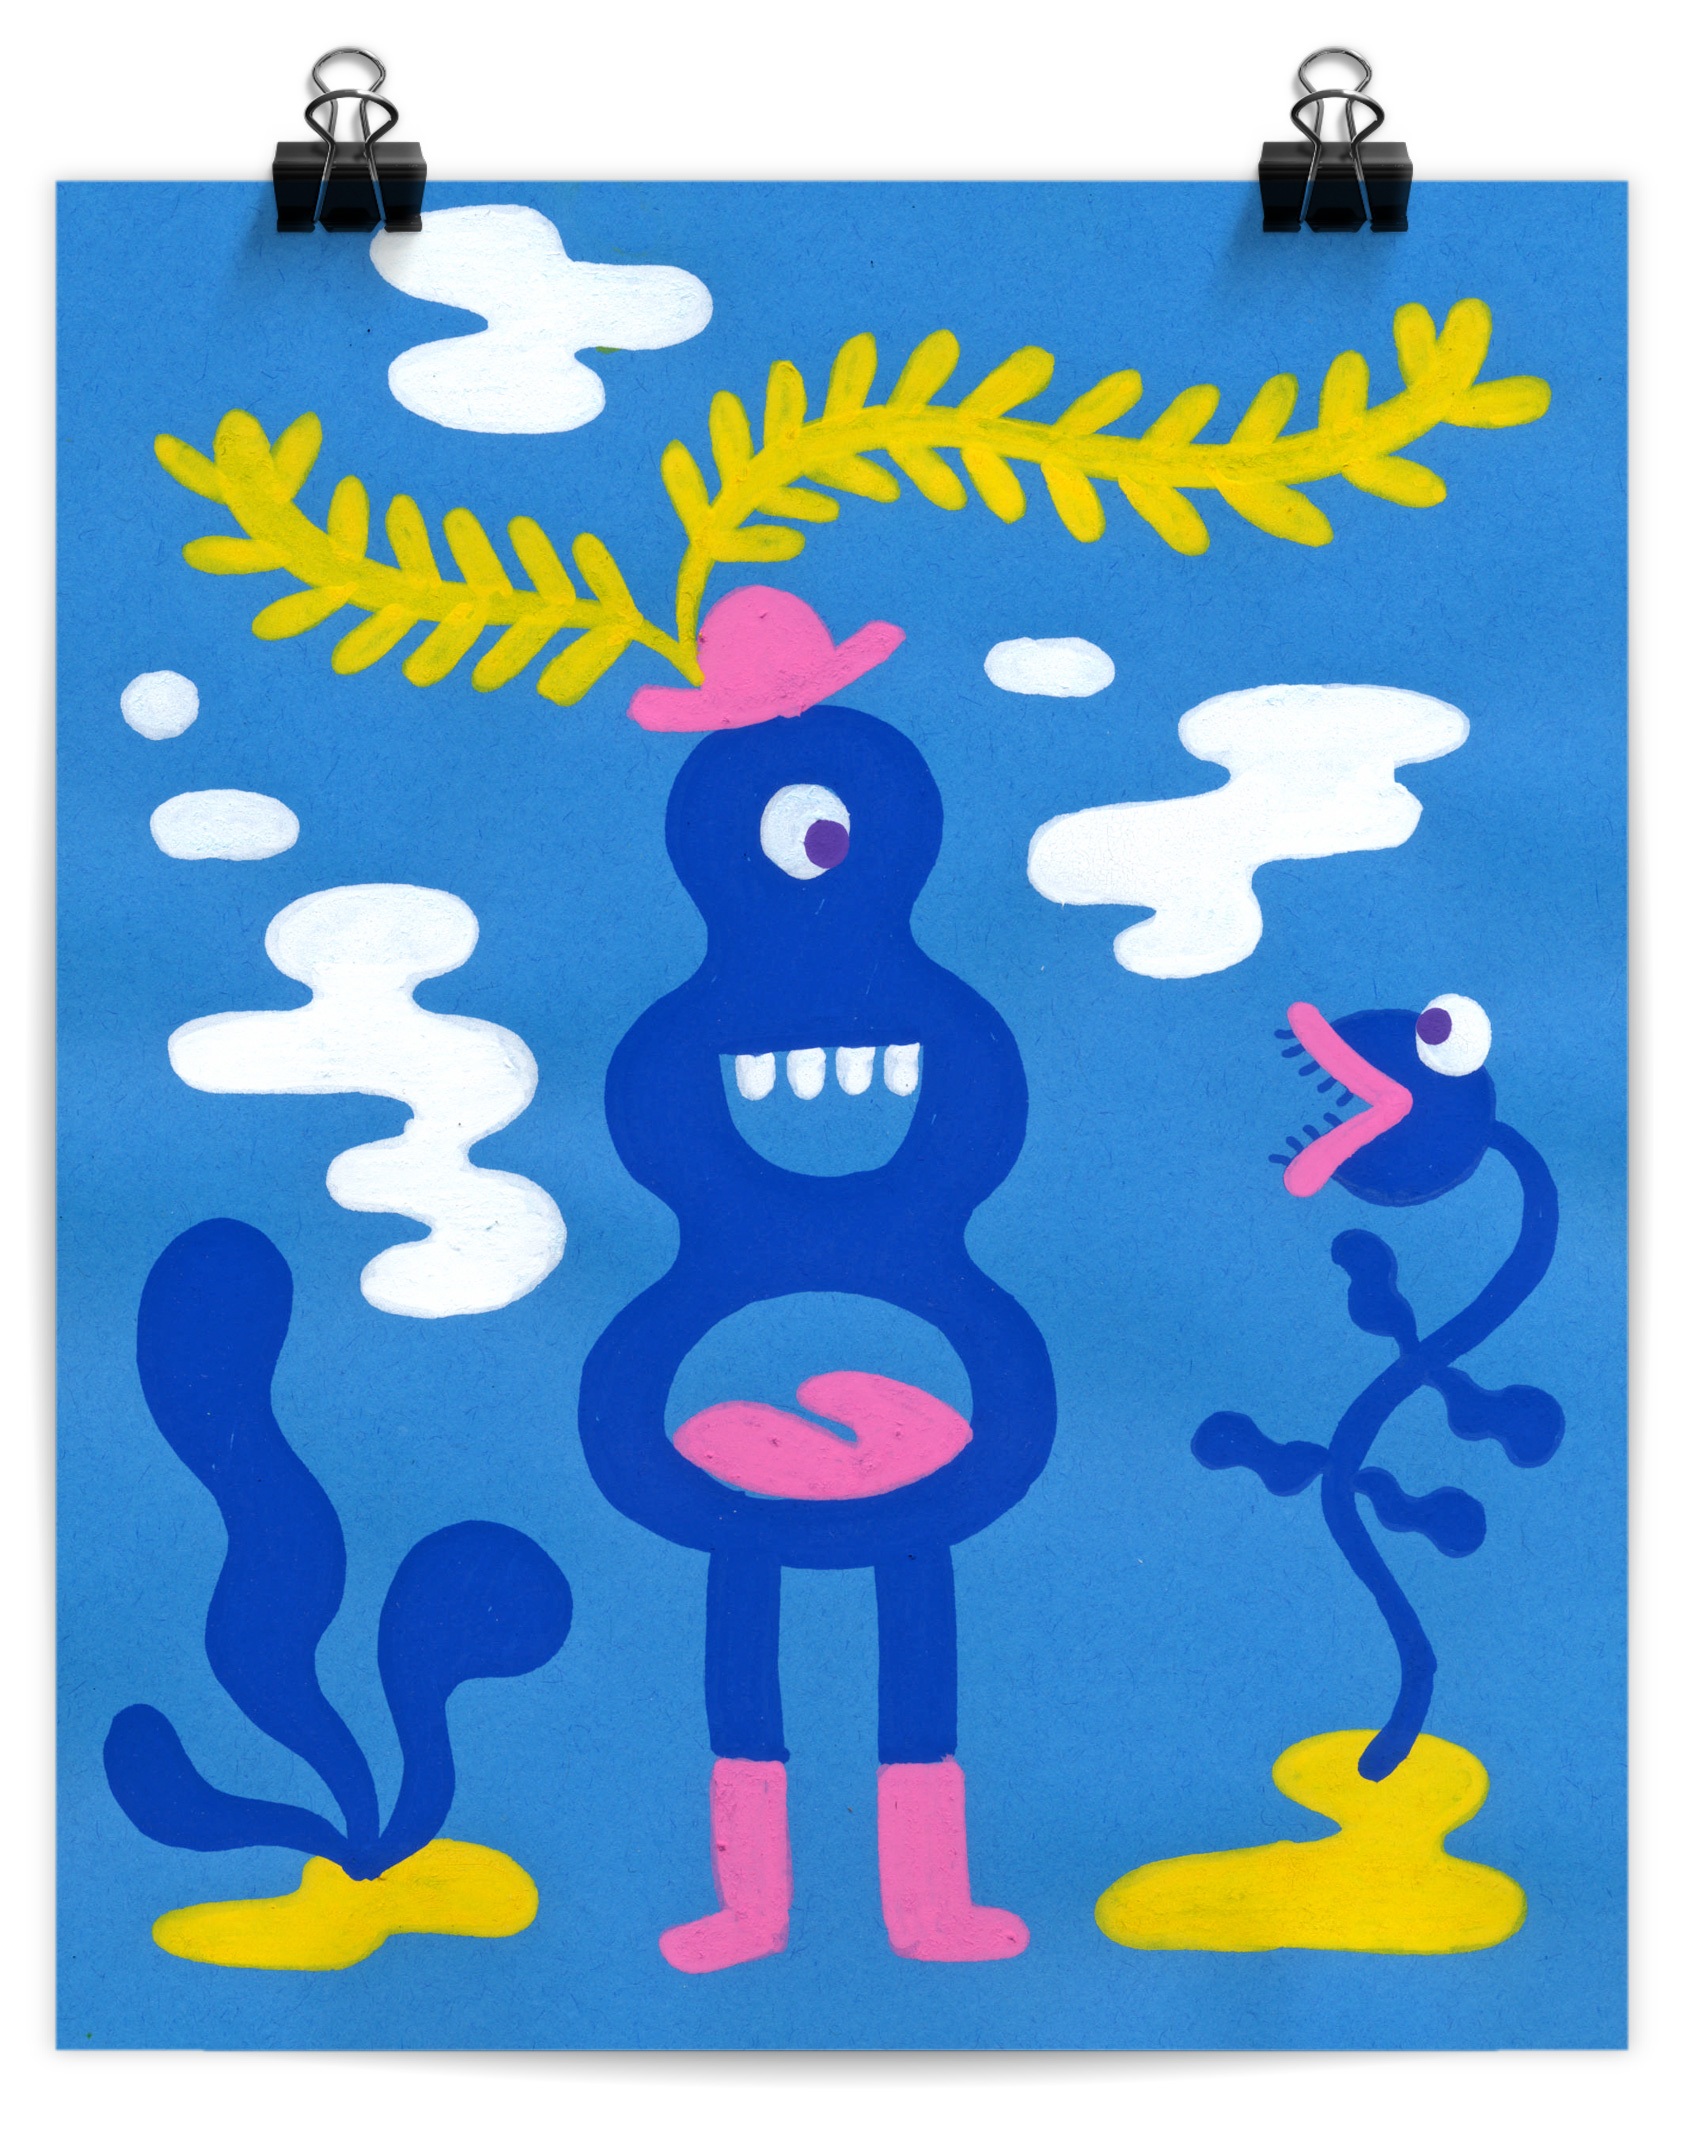 Posca marker artwork of a happy monster wearing a yellow-feathered hat and talking to a venus fly trap.